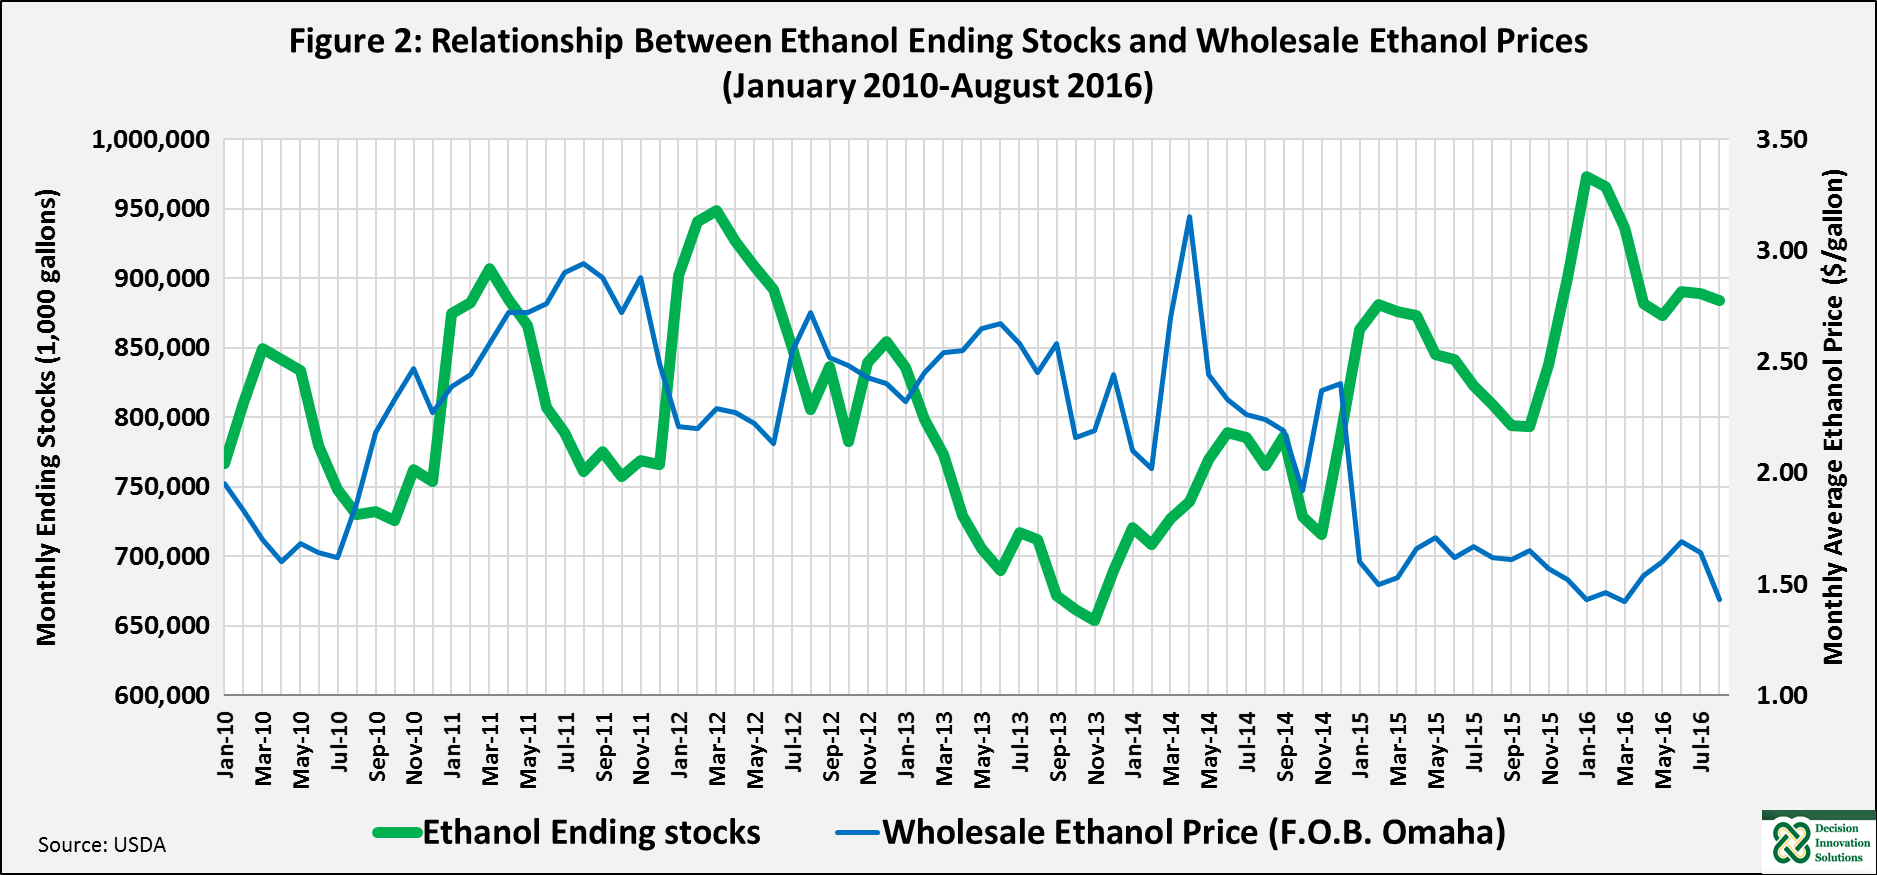 Relationship between ethanol ending stocks and wholesale ethanol prices